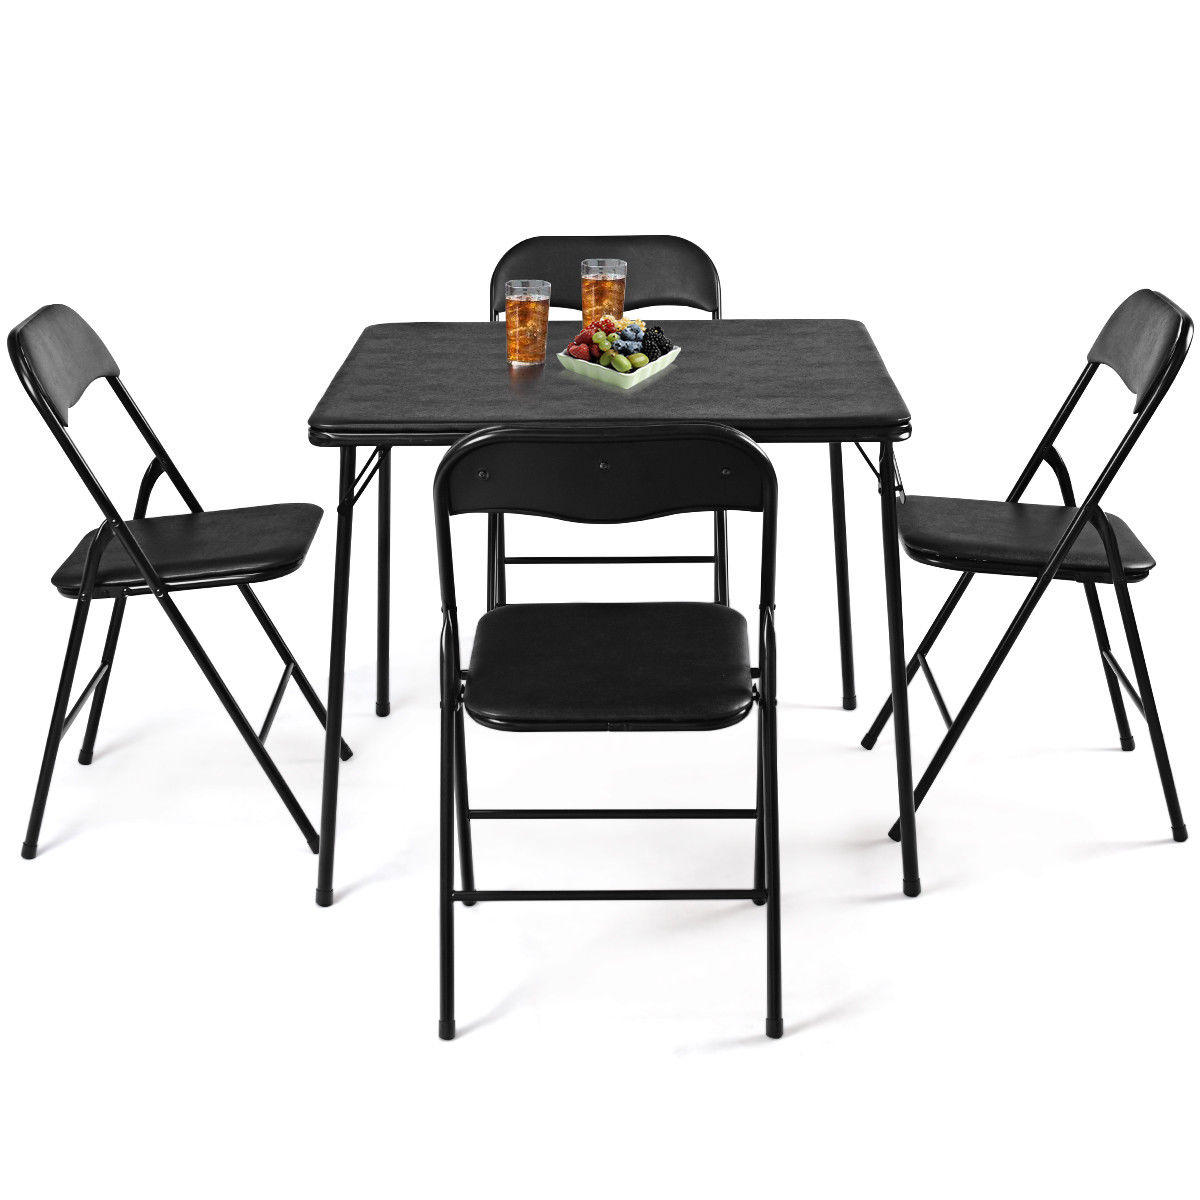 Costway 5PC Black Folding Table Chair Set Guest Games Dining Room Kitchen Multi-Purpose